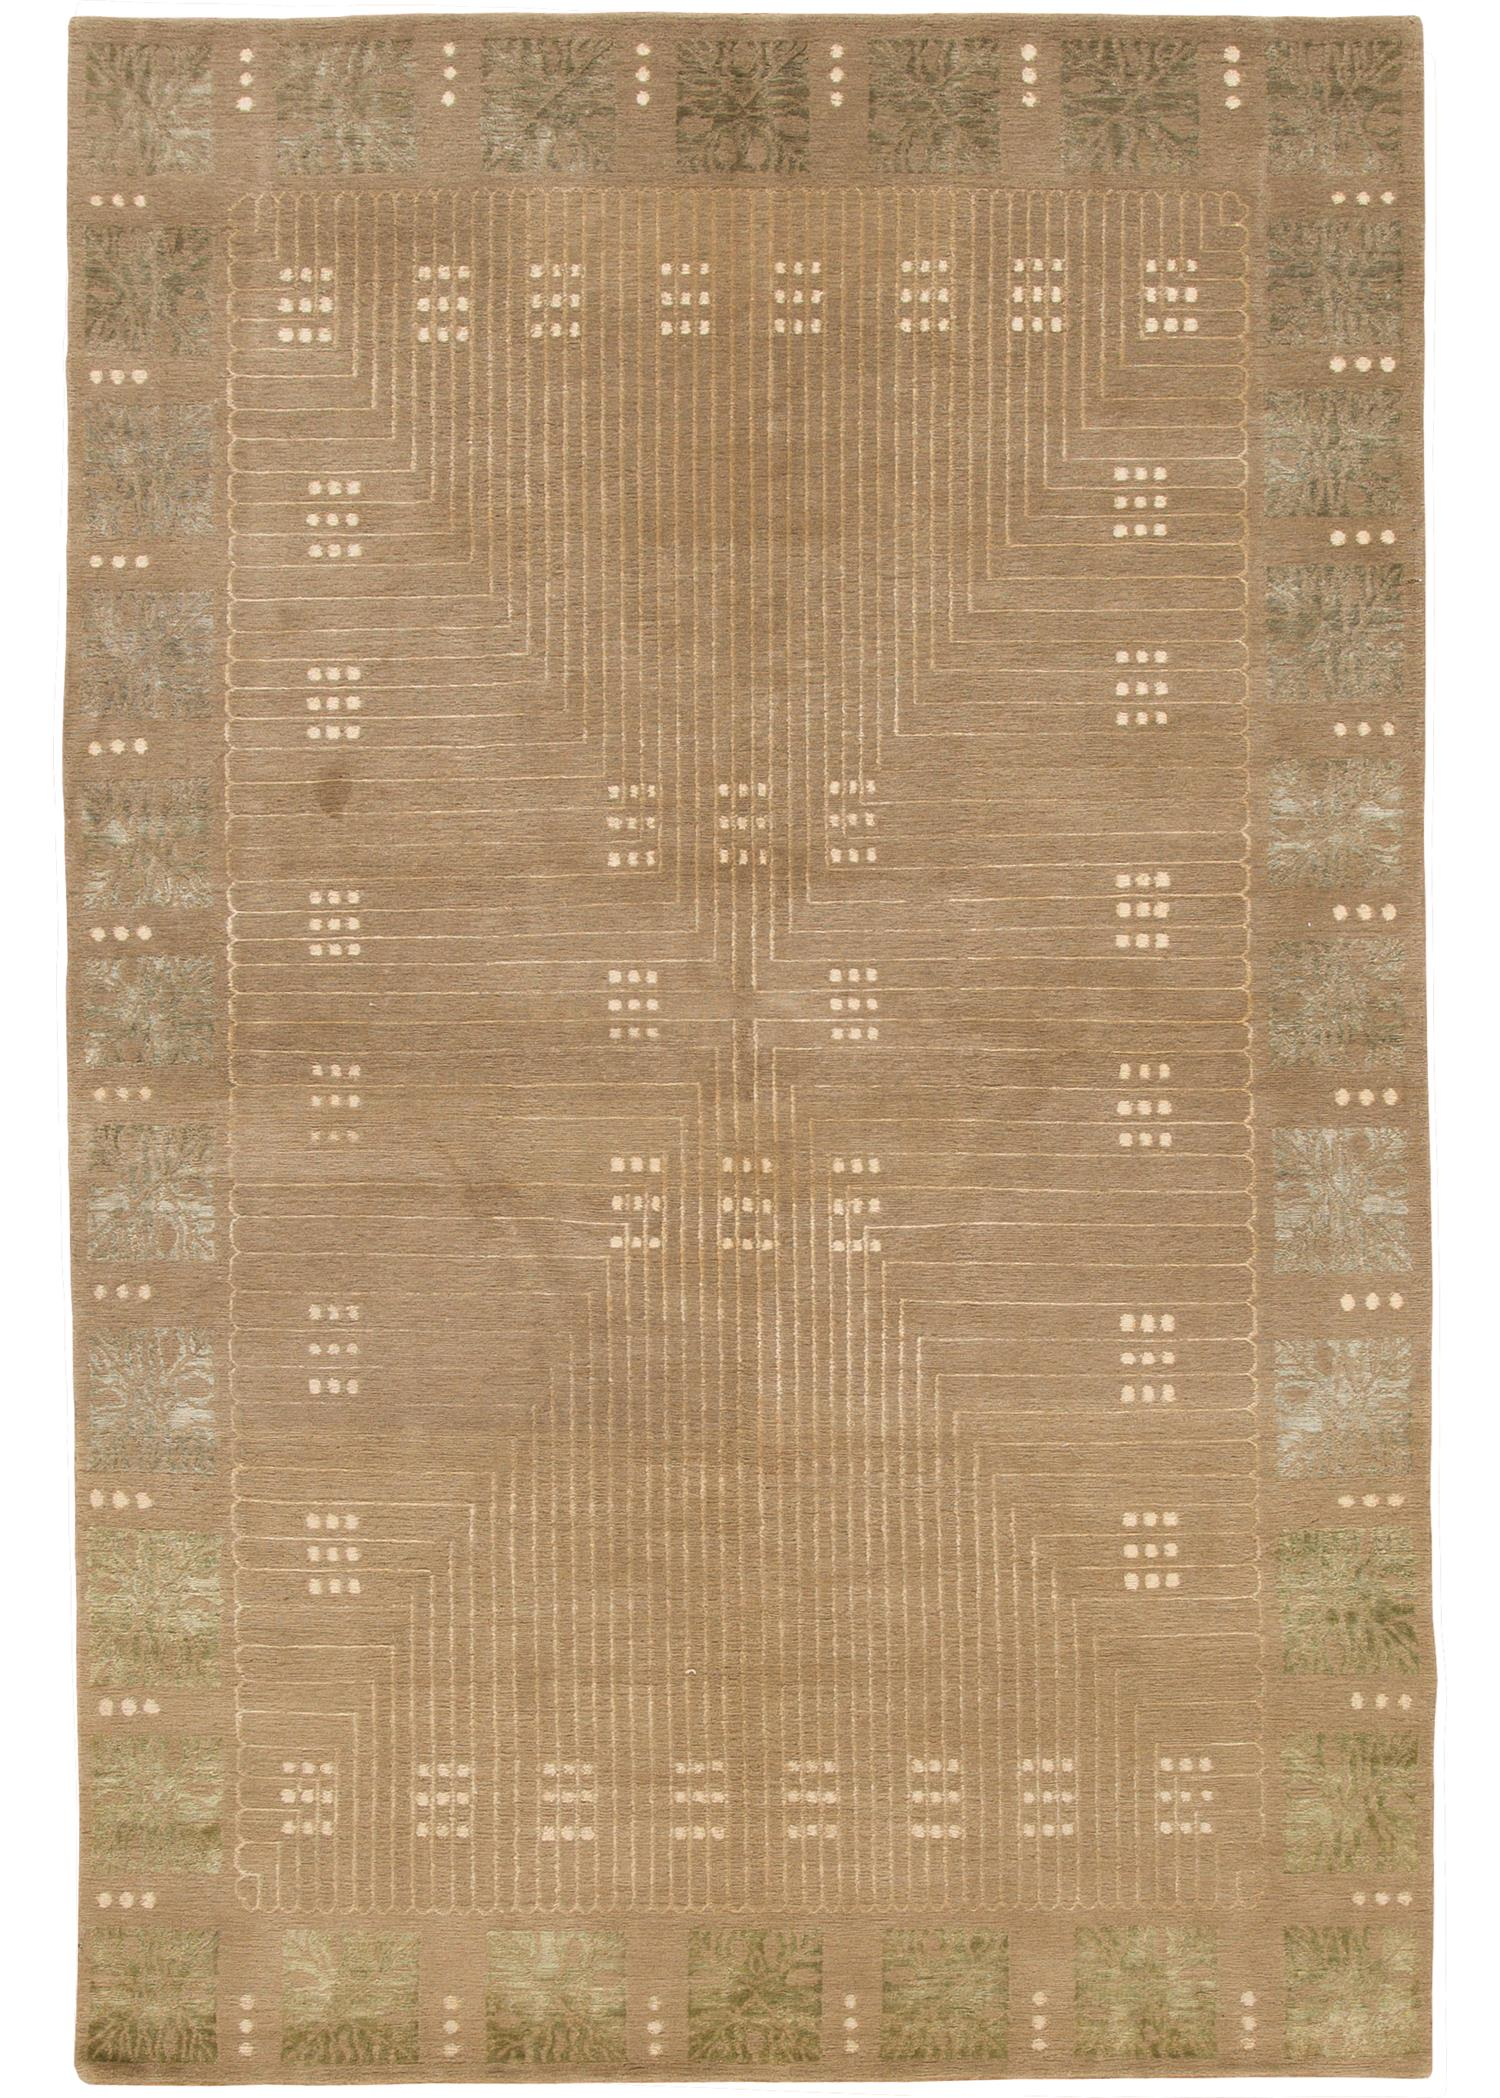 Contemporary Tibetan Rug, 6X9